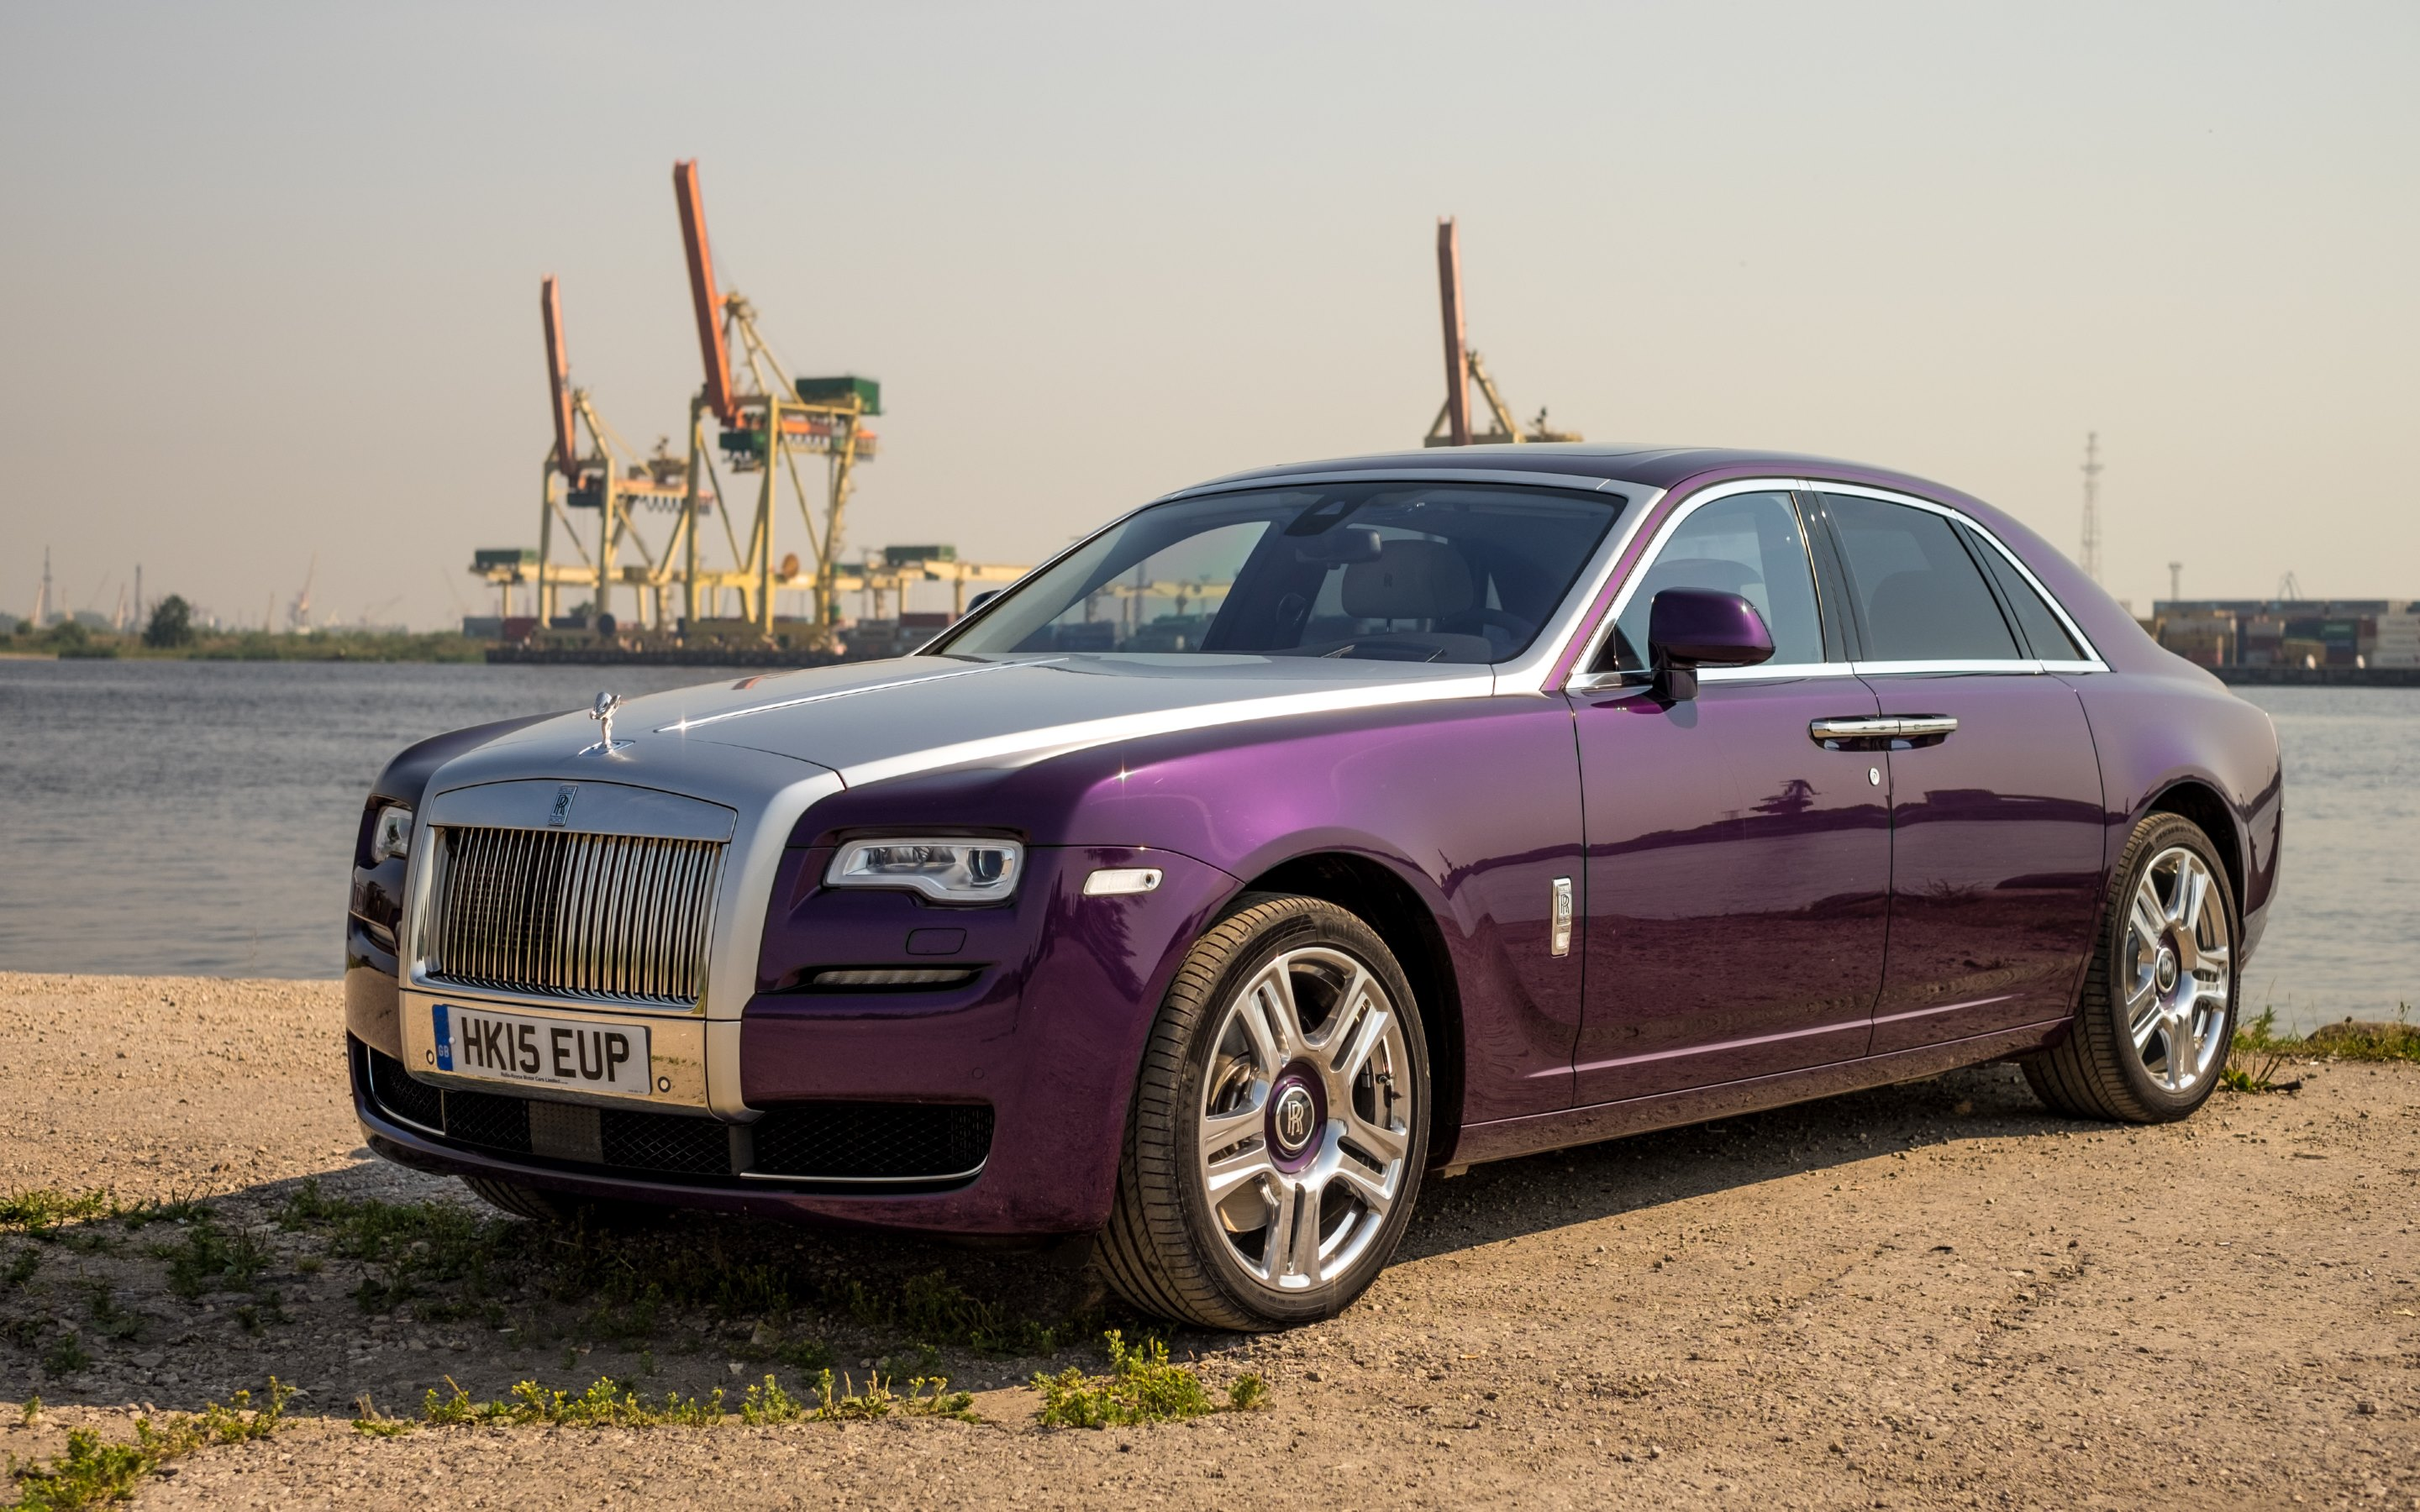 rolls royce ghost 2015 wallpaper. best 4k wallpapers with rollsroyce ghost luxury car pictures took by karlis dambrans and share his courtesy under cc license download the images rolls royce 2015 wallpaper